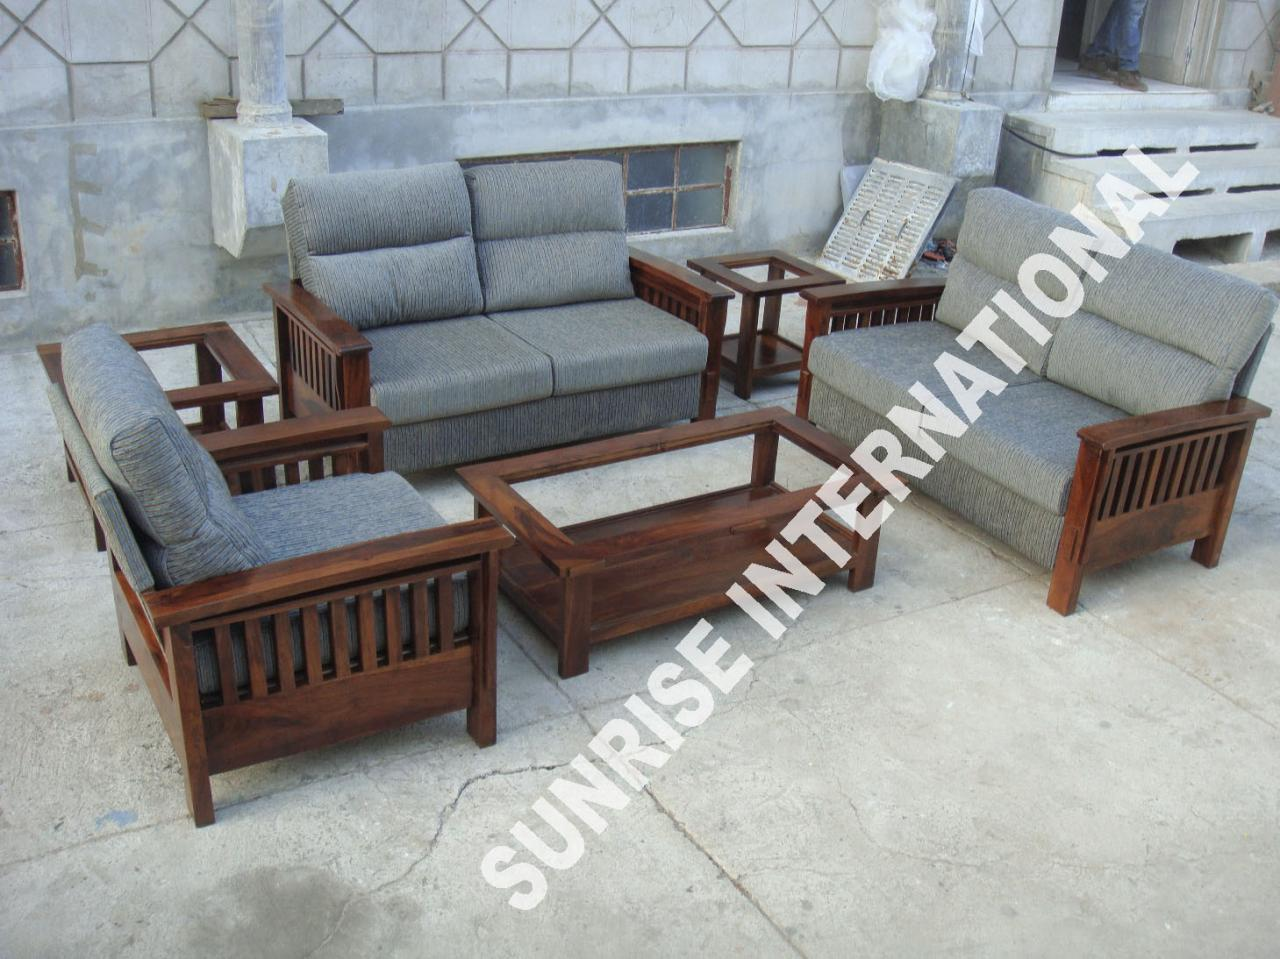 Sofa Set Images Kerala Sunrise International Wooden Sofa Sets L Shade Sofa Set